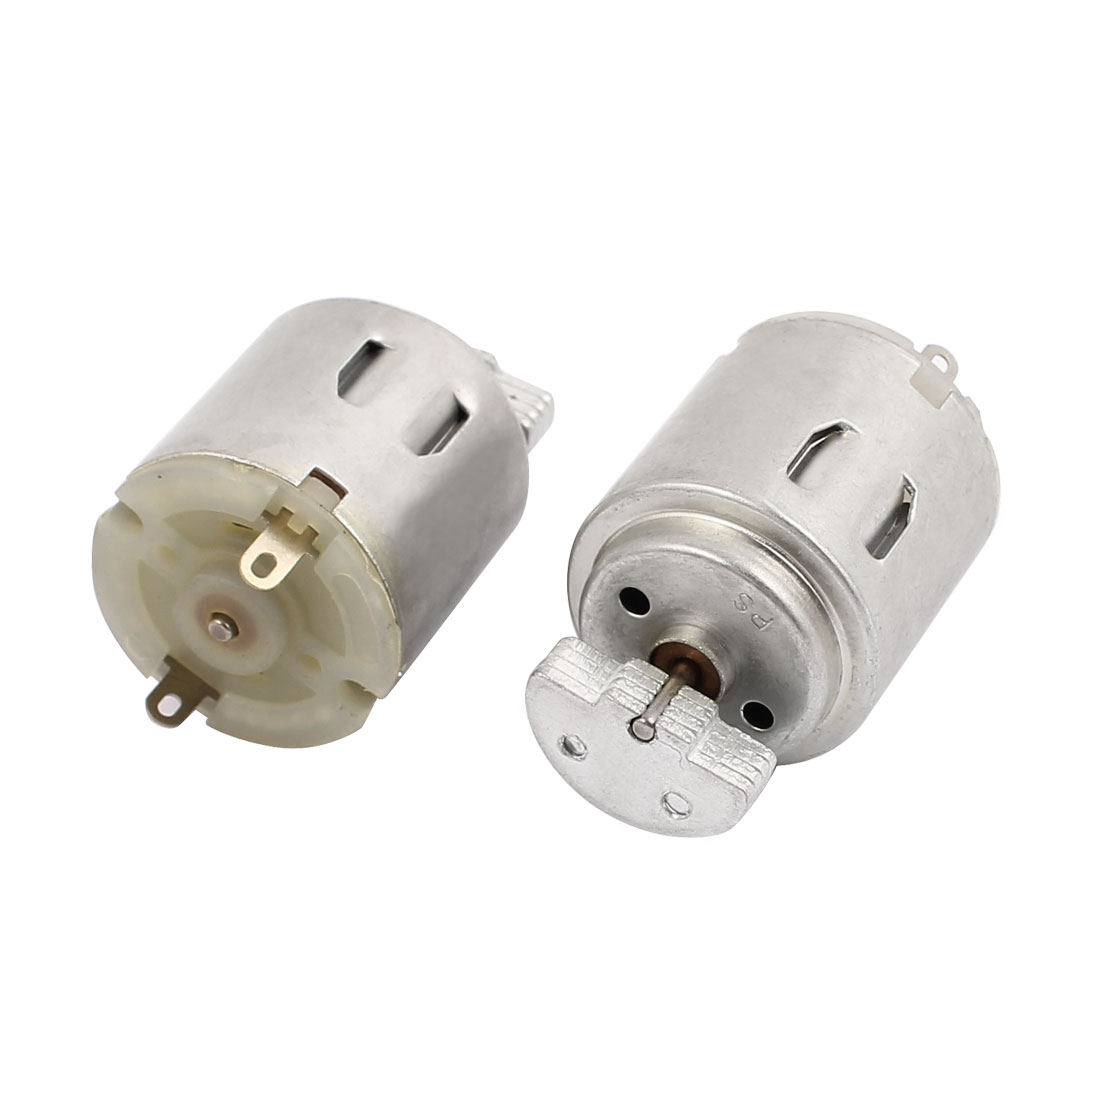 2PCS DC 3-6V 1000RPM Large Torque Micro Vibration Motor for Electric Massage